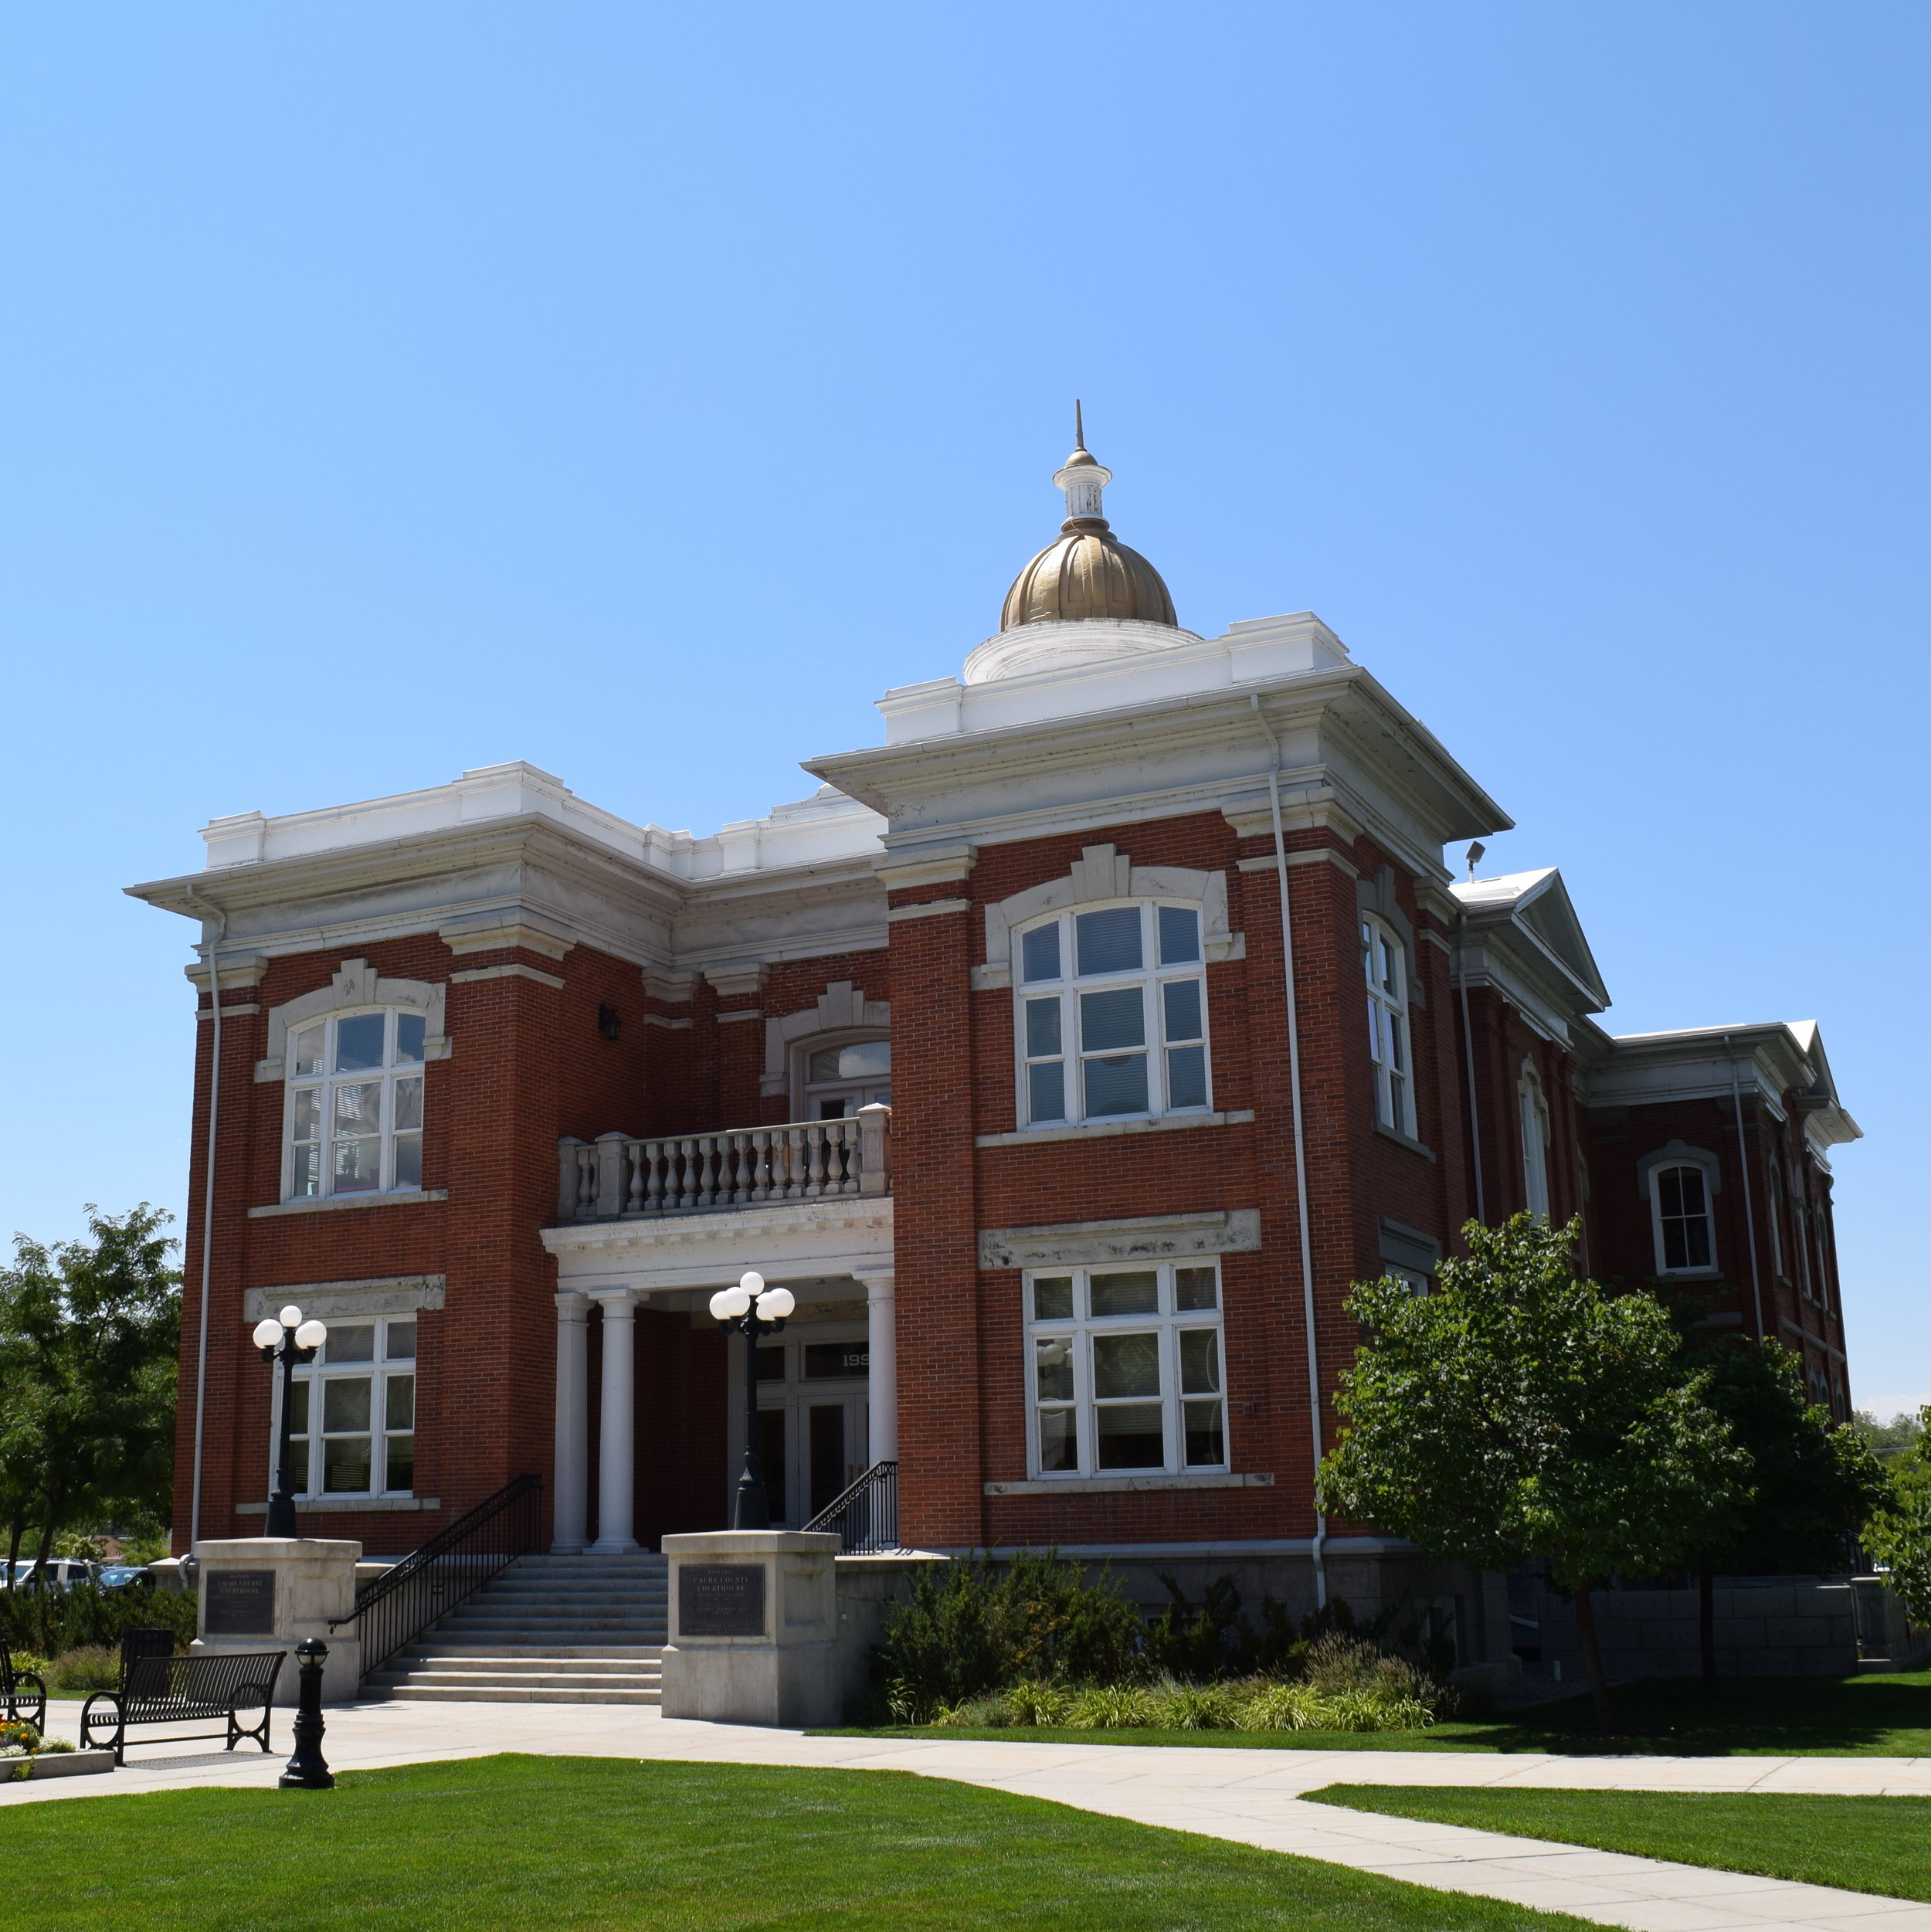 The old Cache County Courthouse in Logan, Utah.